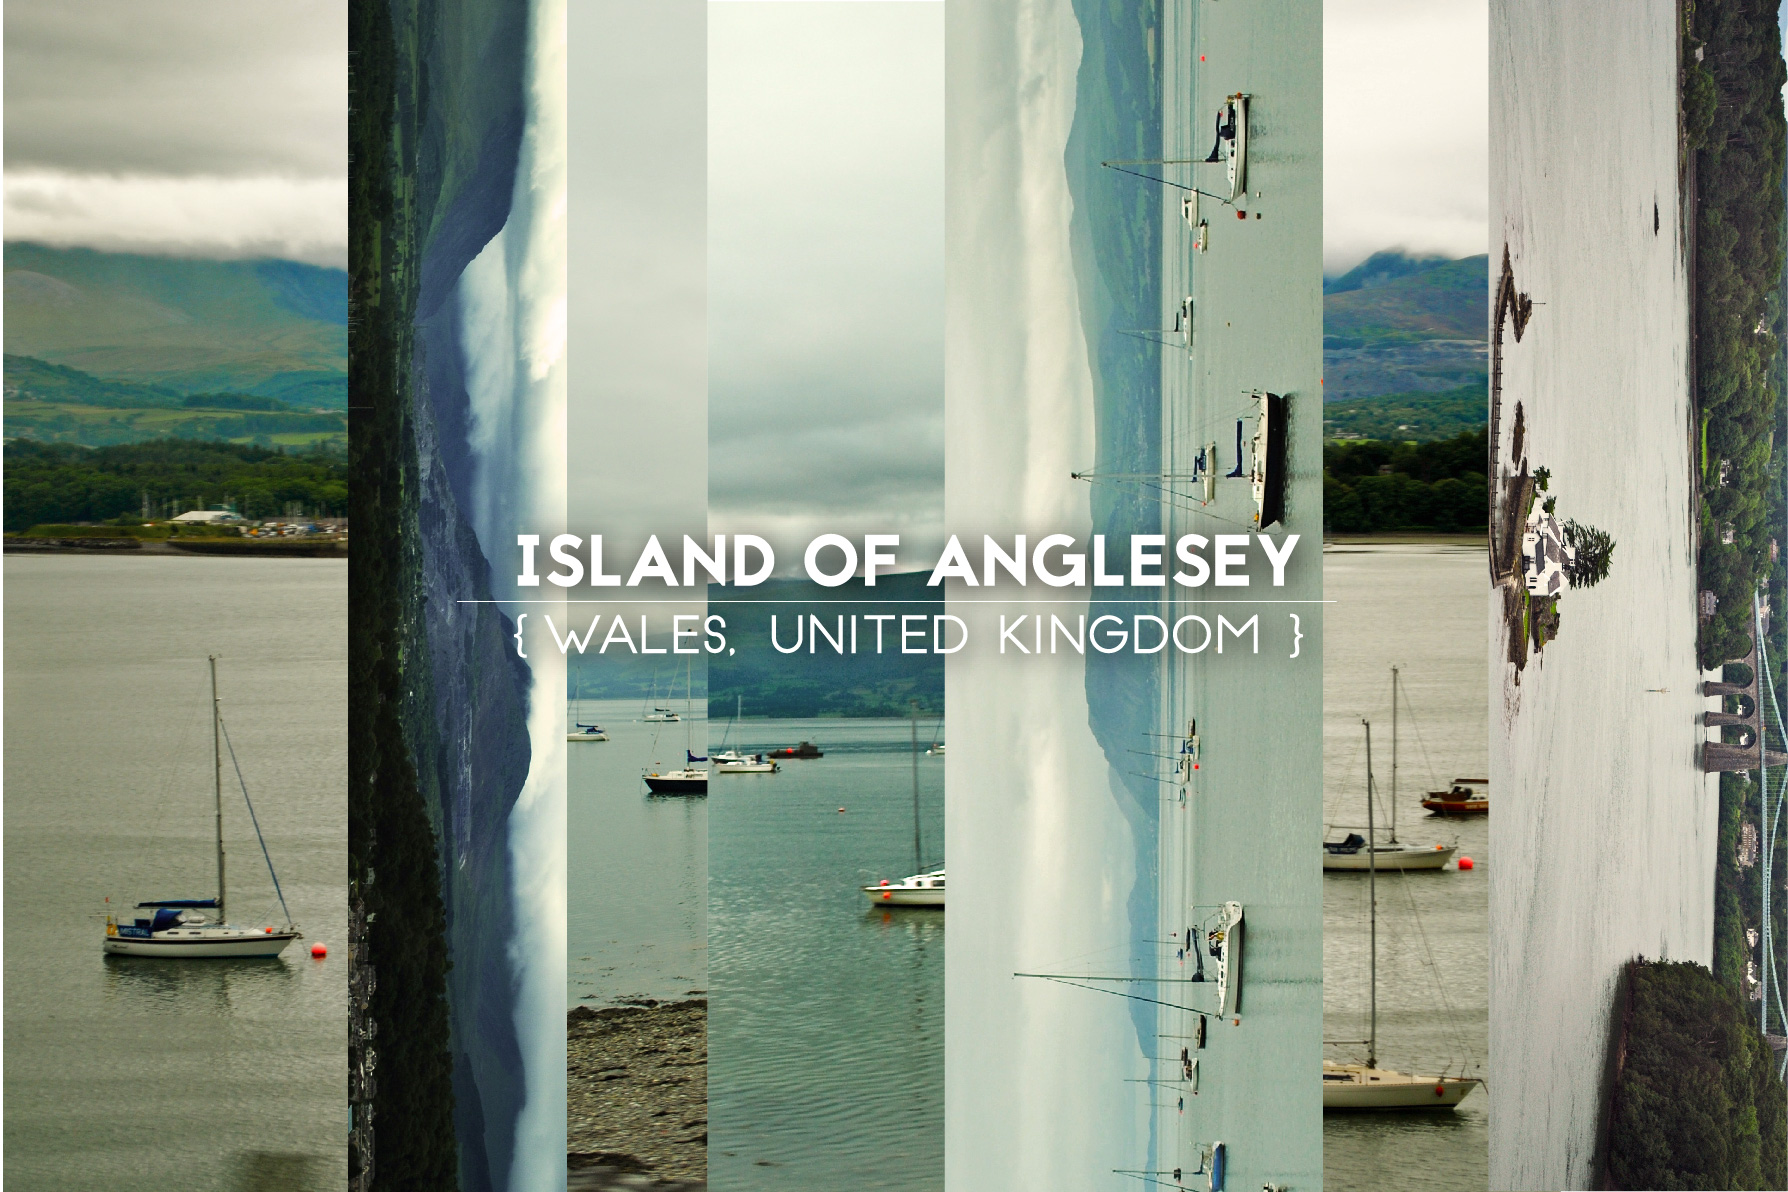 Island of Anglesey, Wales